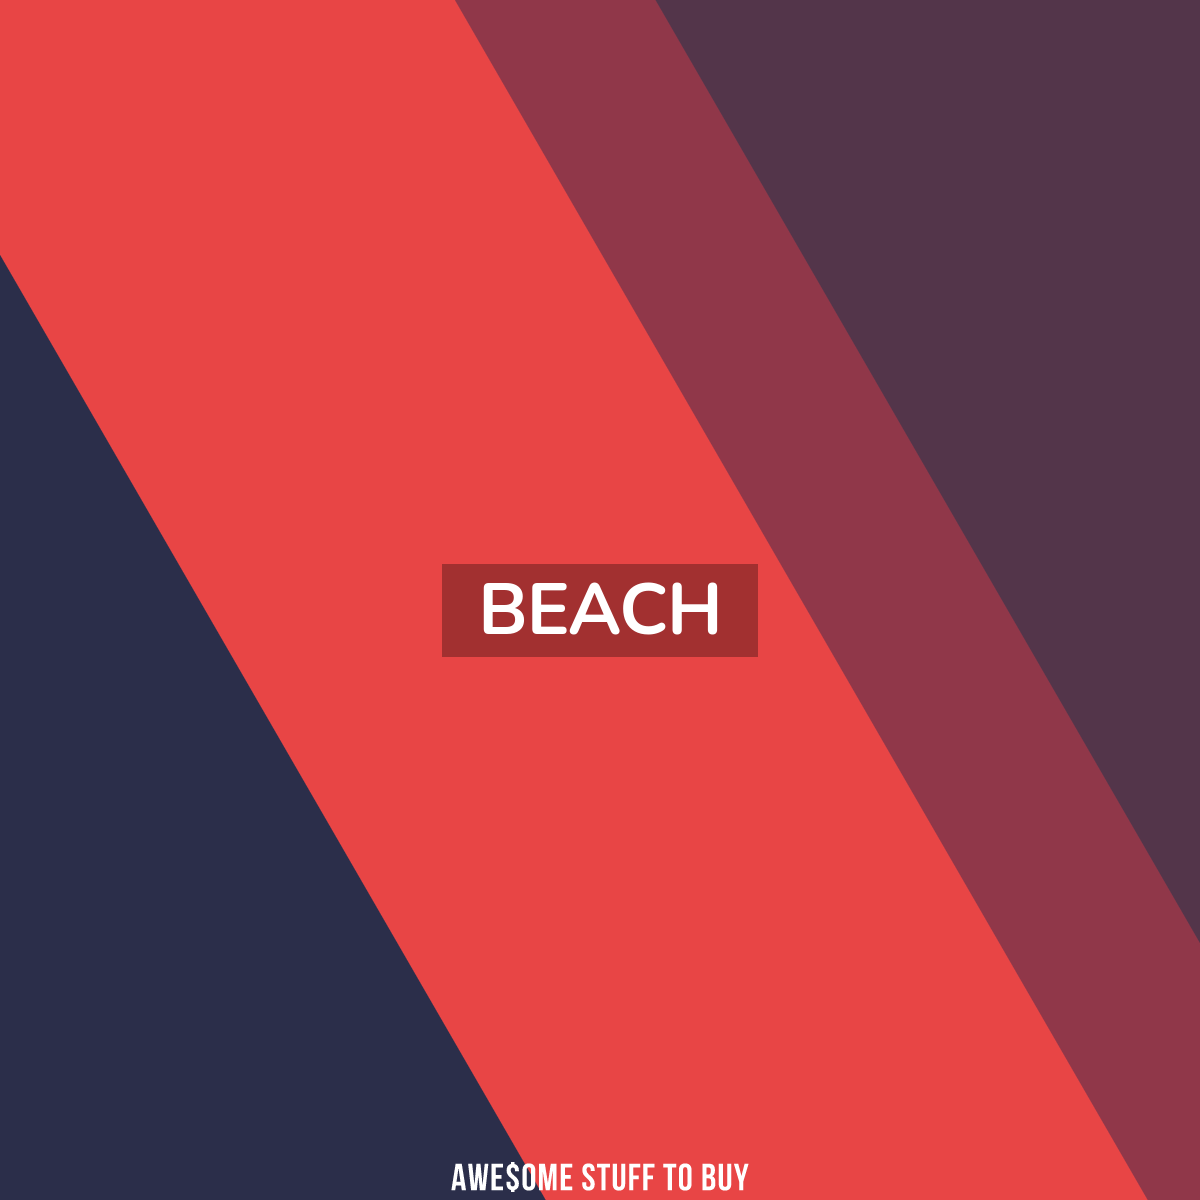 beach // Awesome Stuff to Buy